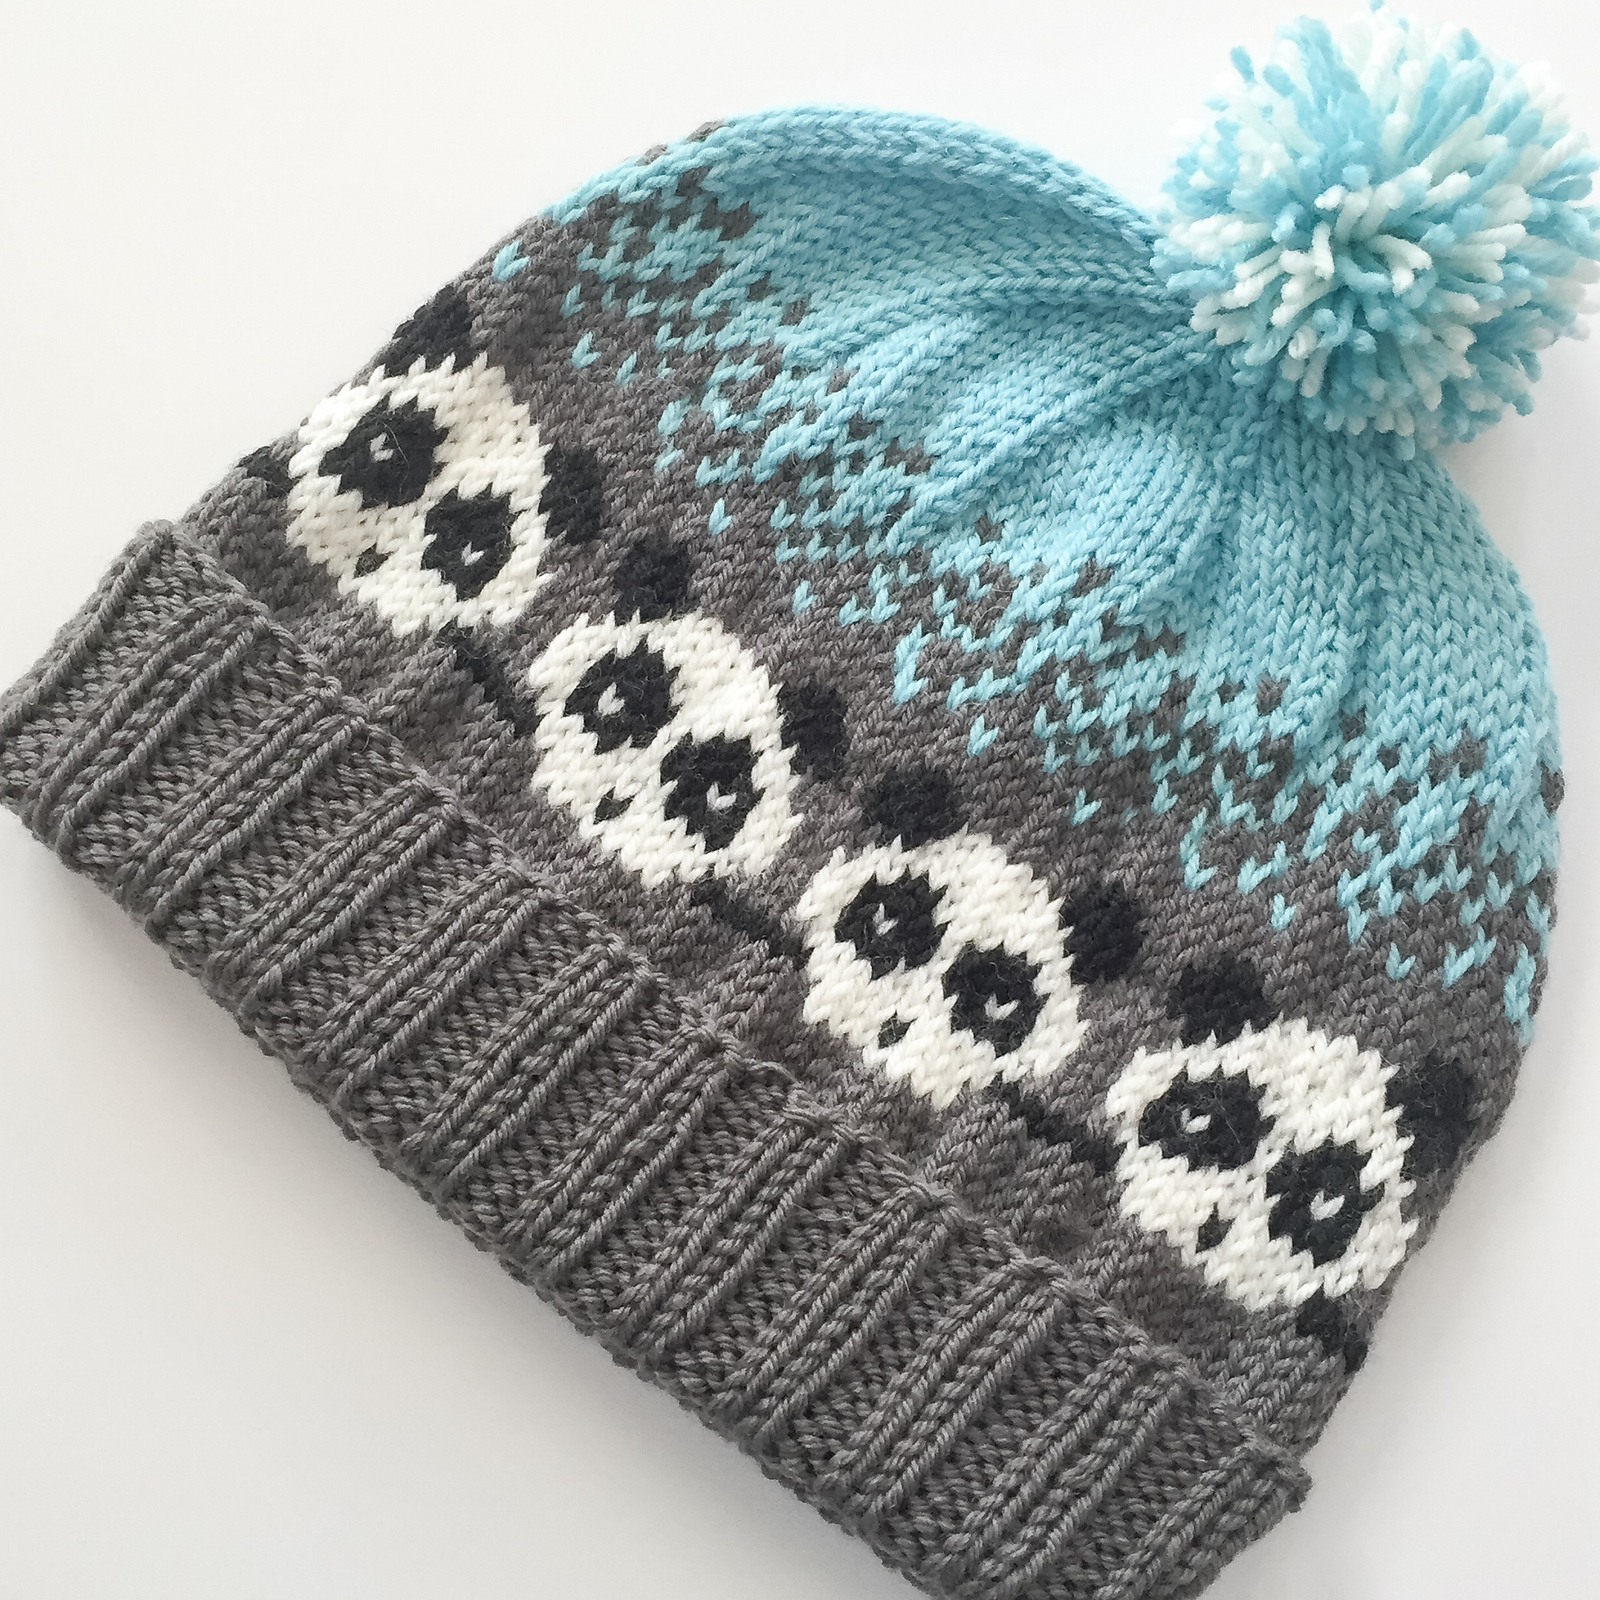 Colorful hat knitting patterns in the loop knitting free knitting pattern for pandemonium hat bankloansurffo Images